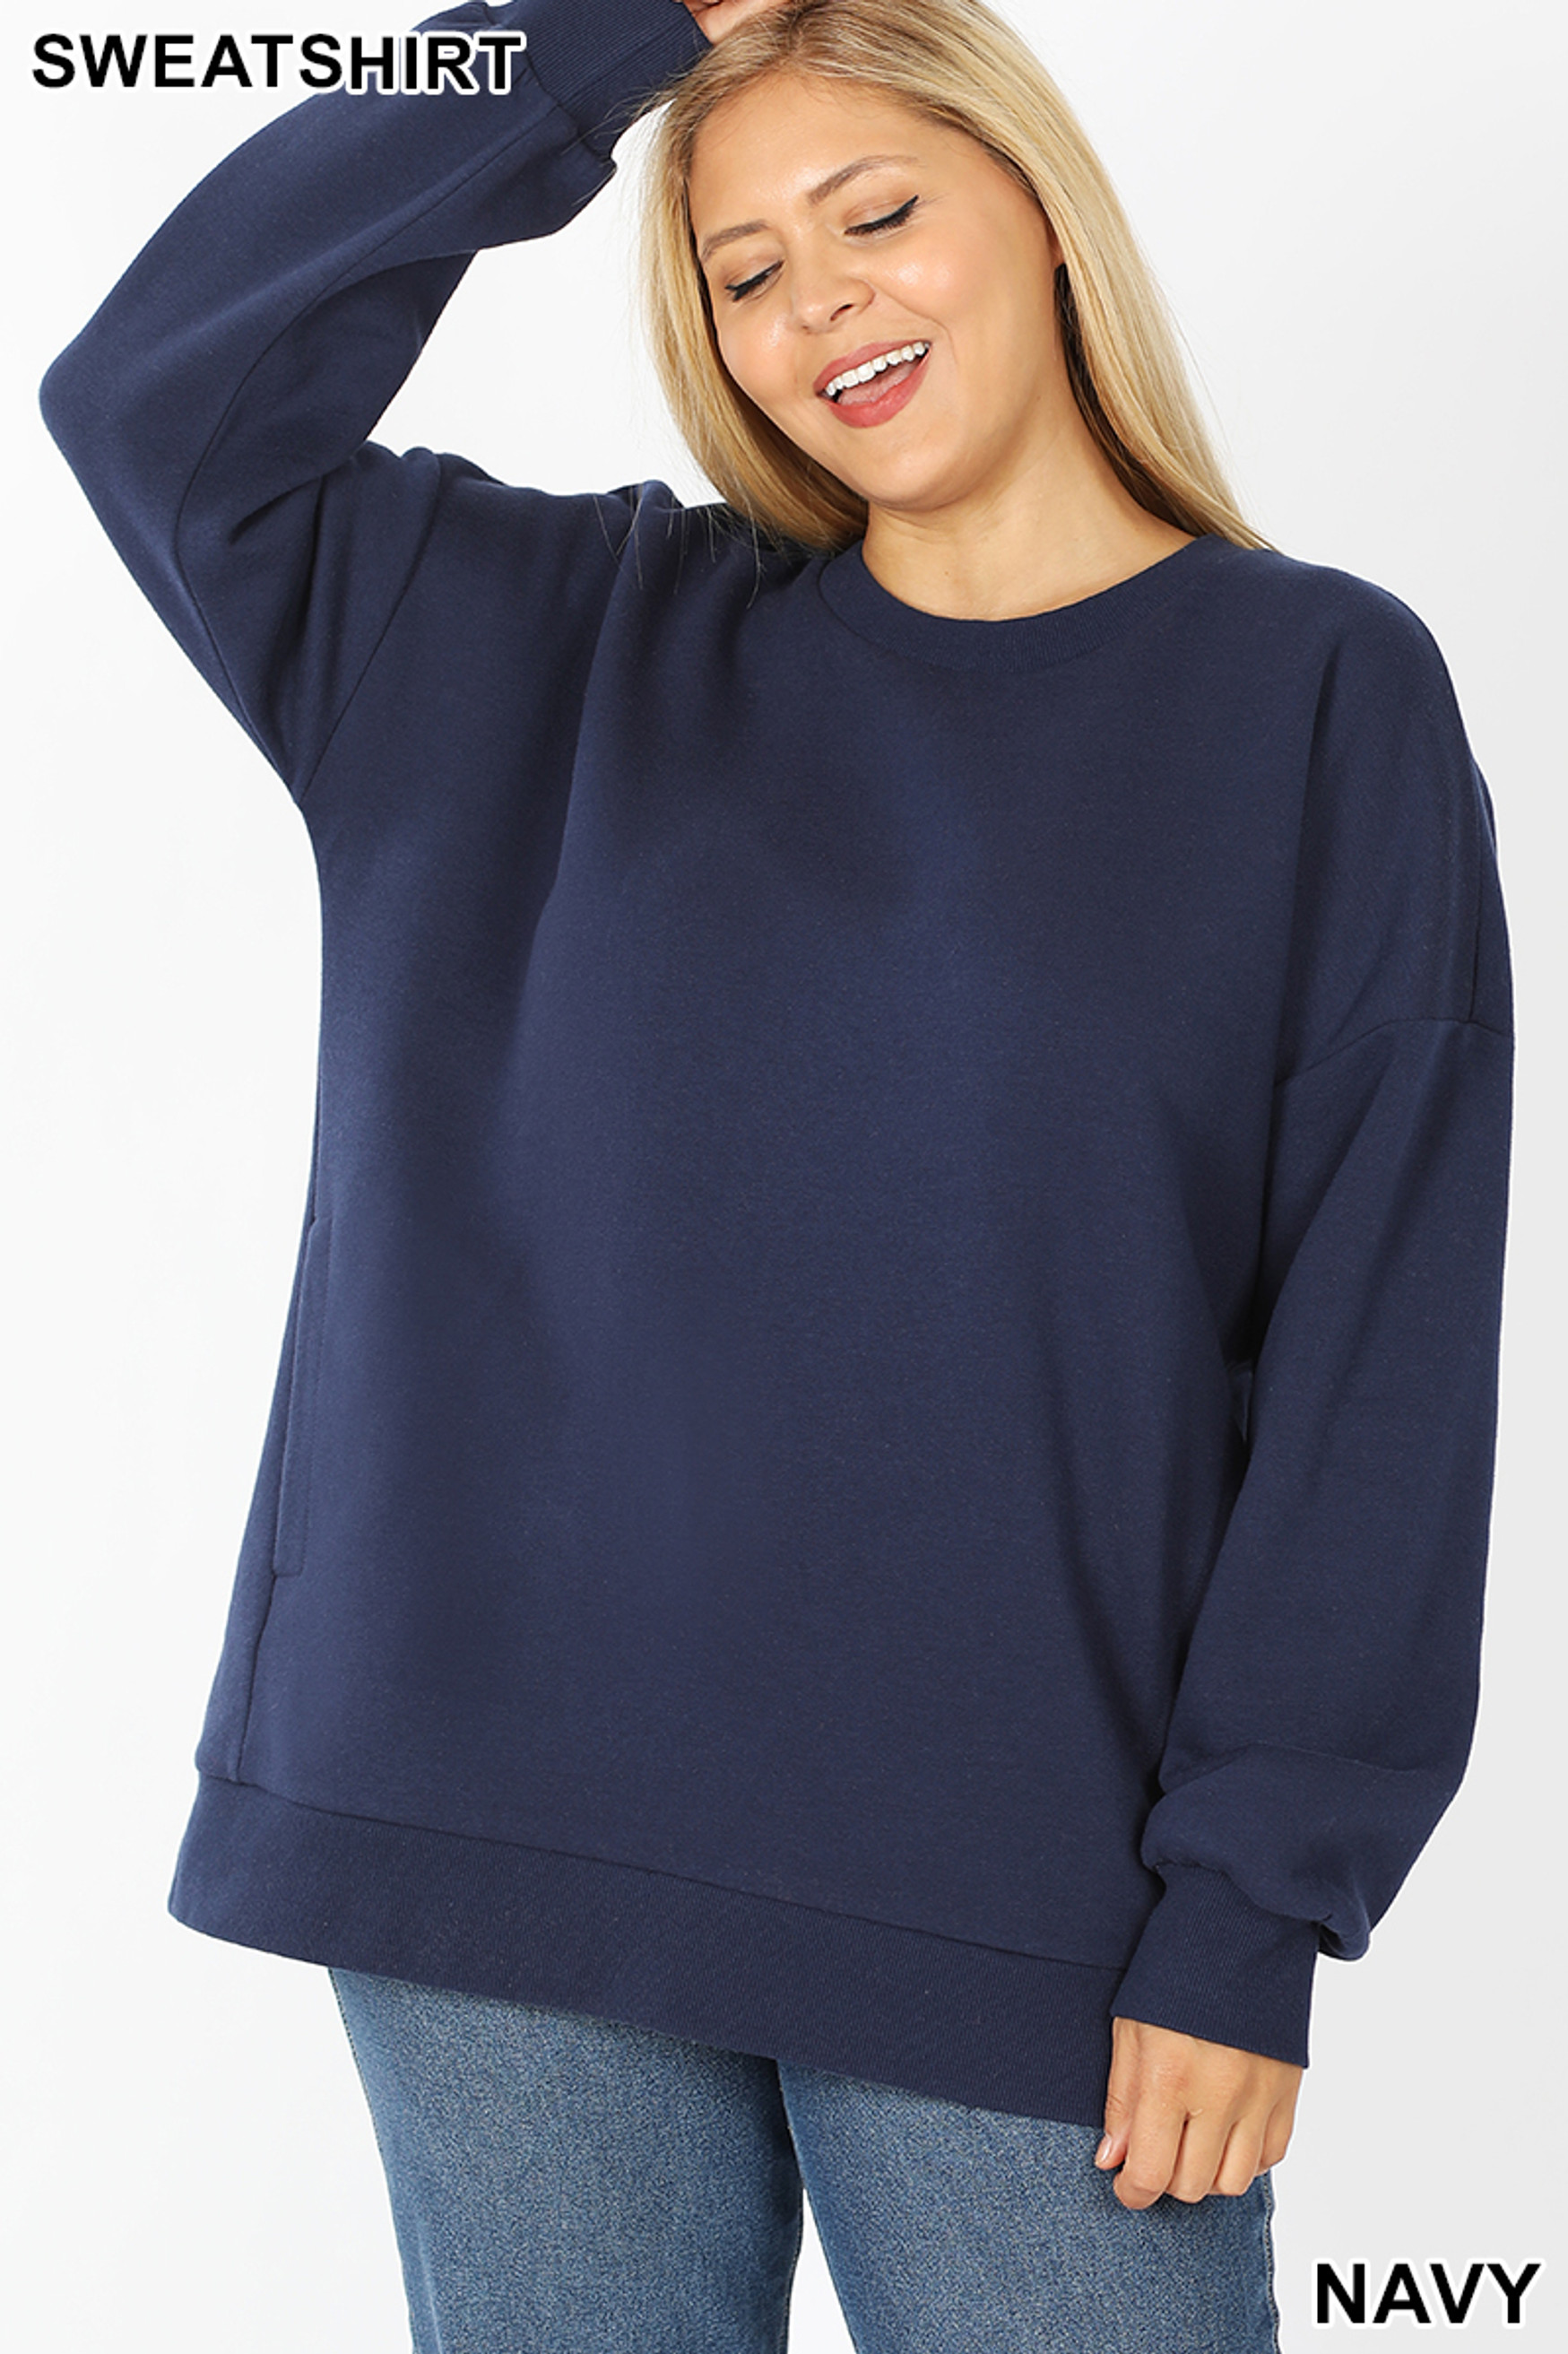 Front image of Navy Cotton Round Crew Neck Plus Size Sweatshirt with Side Pockets